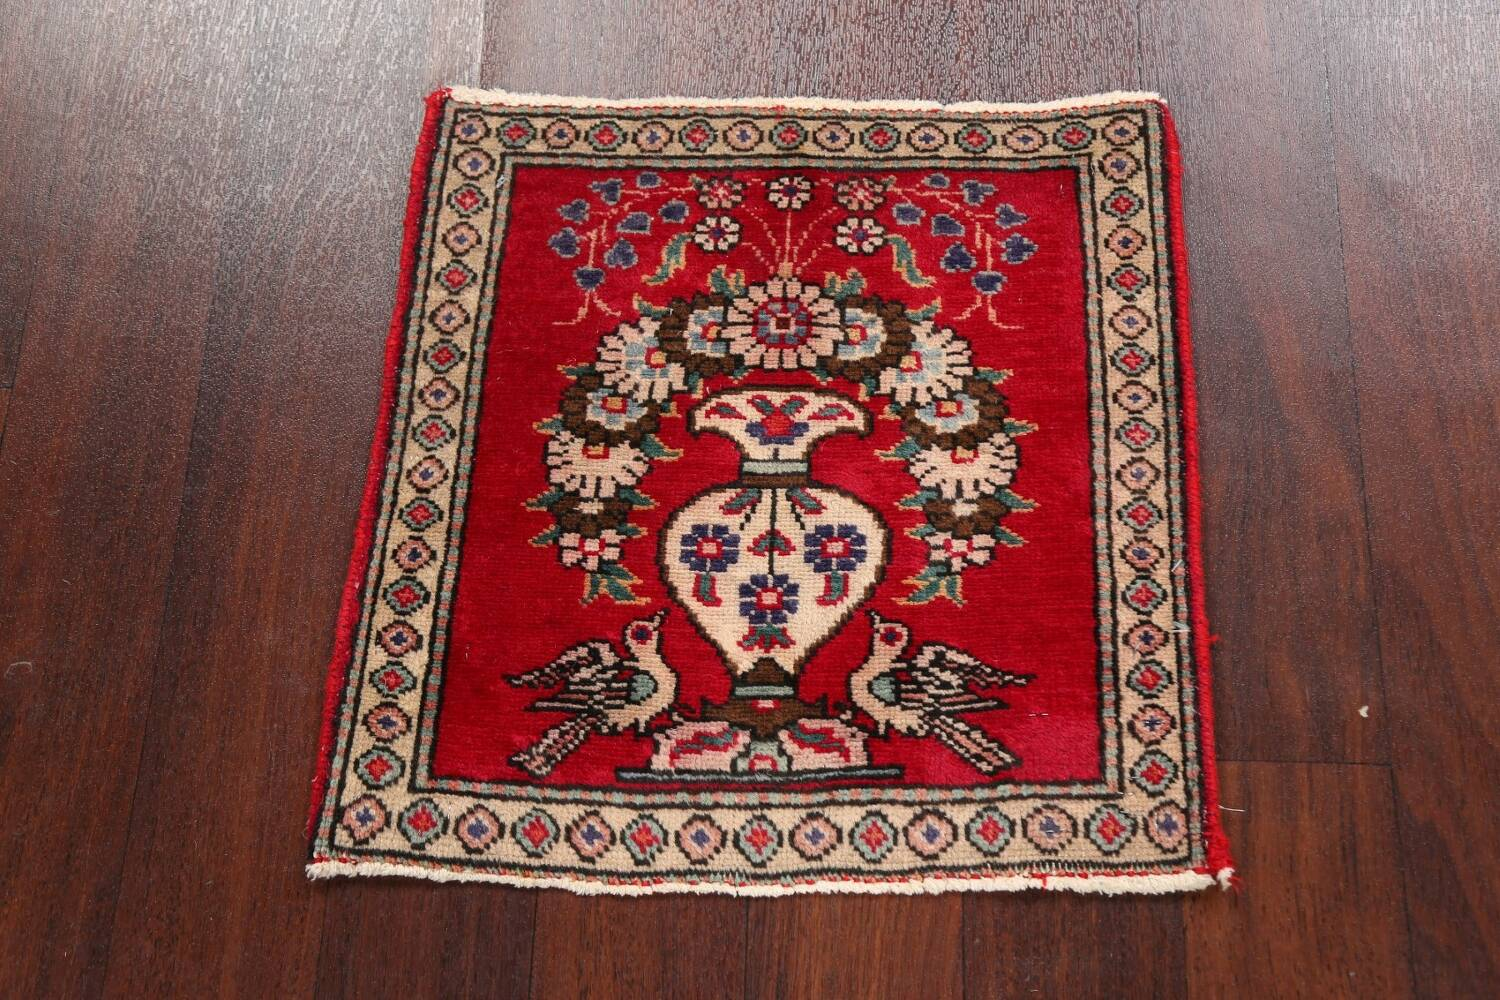 Animal Pictorial Red Tabriz Persian Area Rug 2x2 image 2